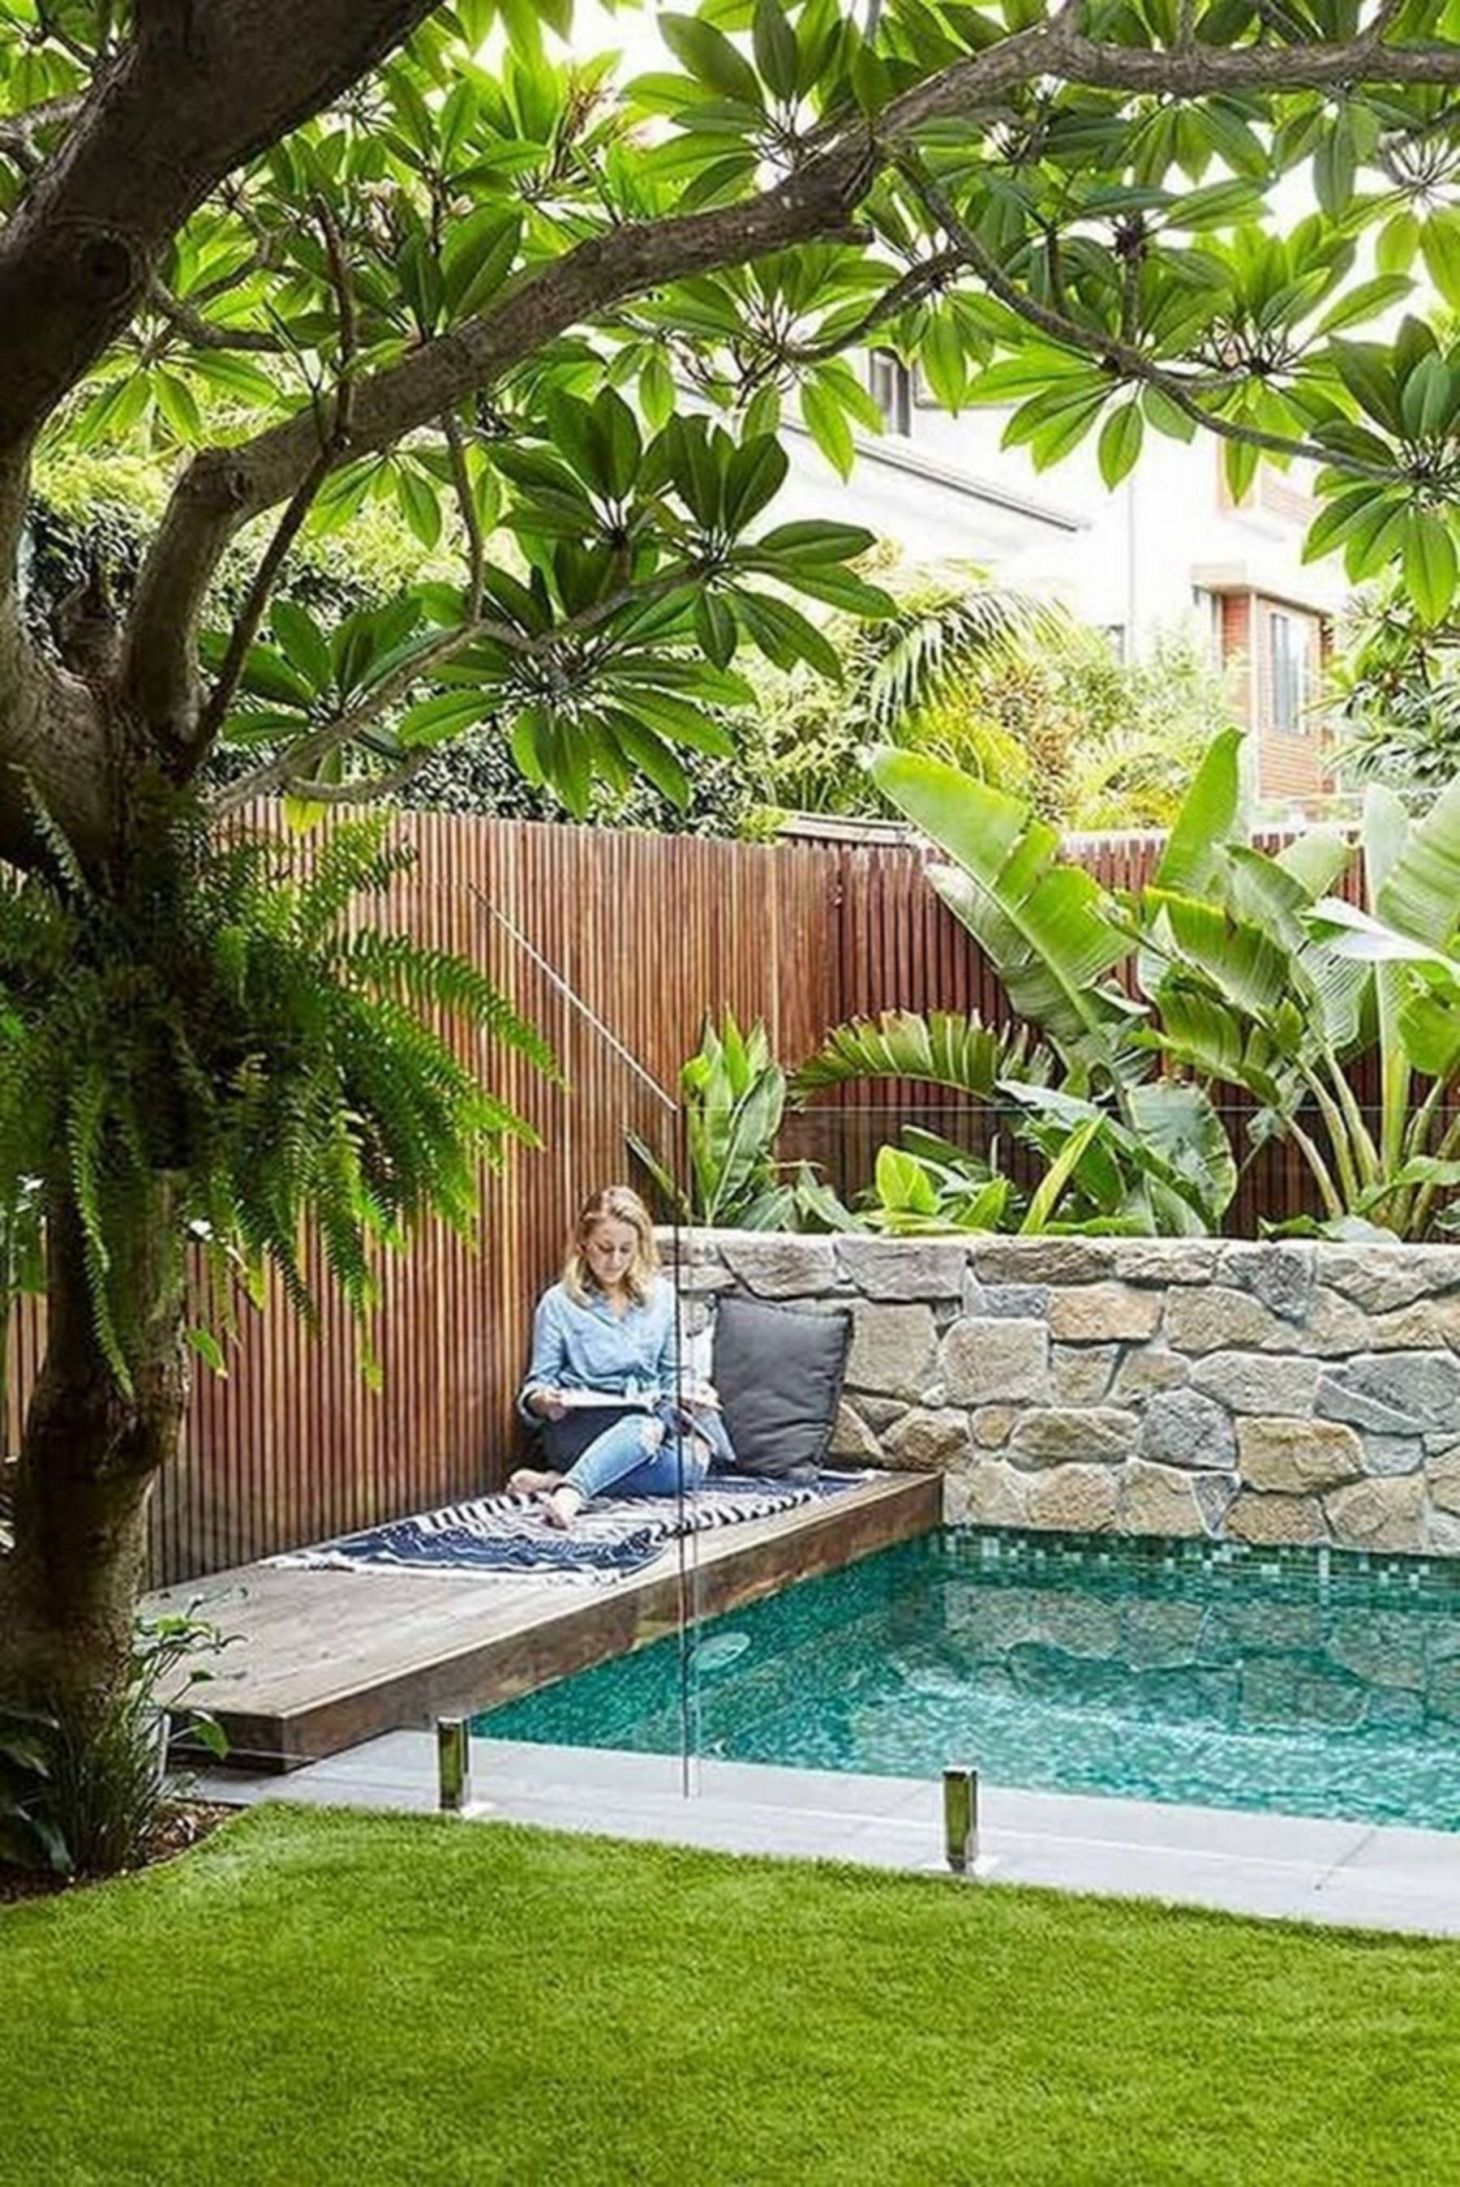 8 Gorgeous Small Pool Design Ideas On A Budget For Your Minimalist